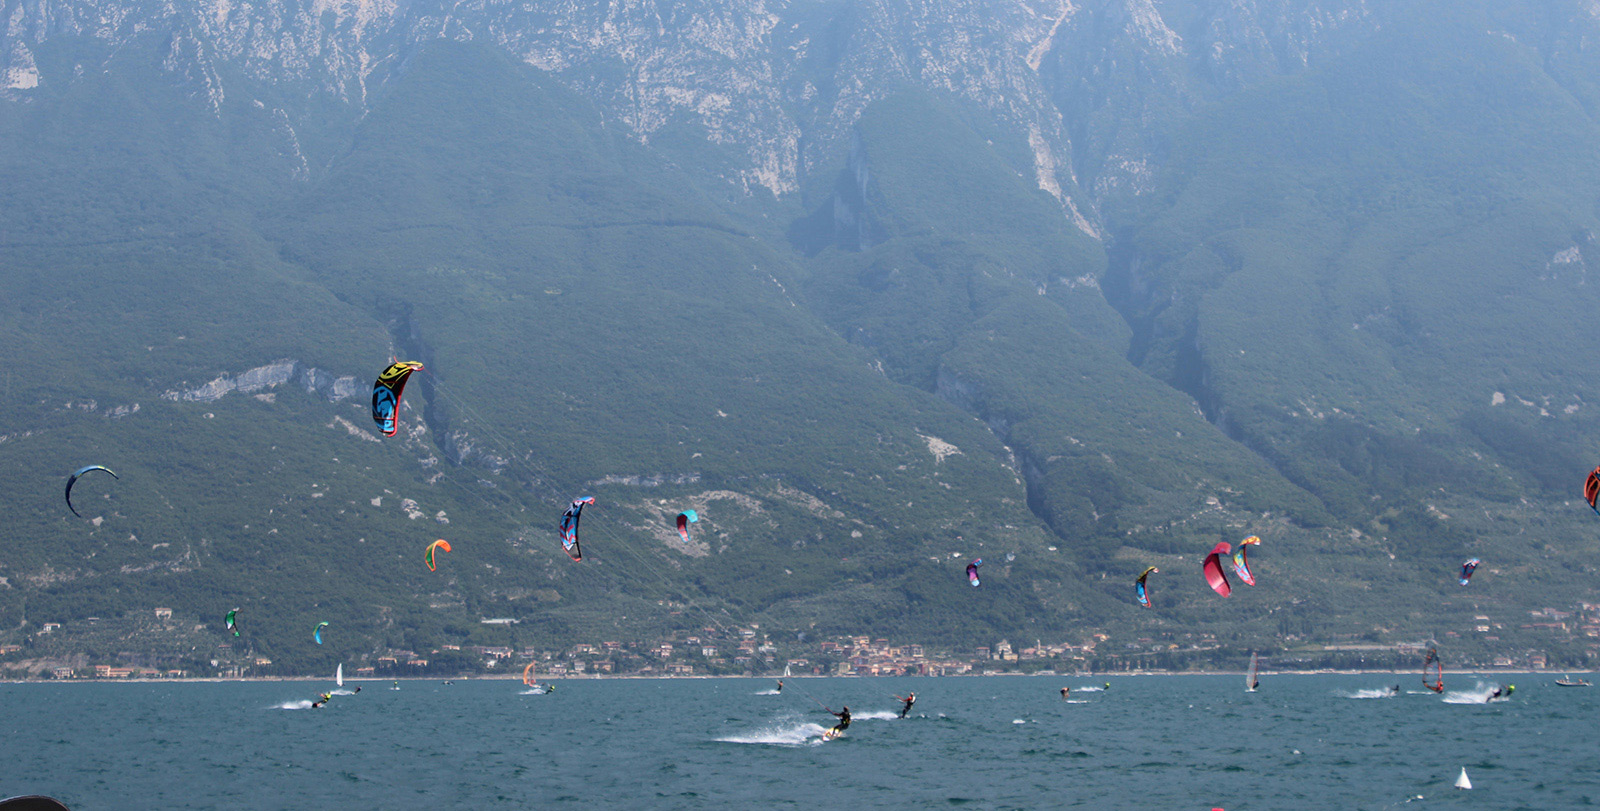 lake garda kiting